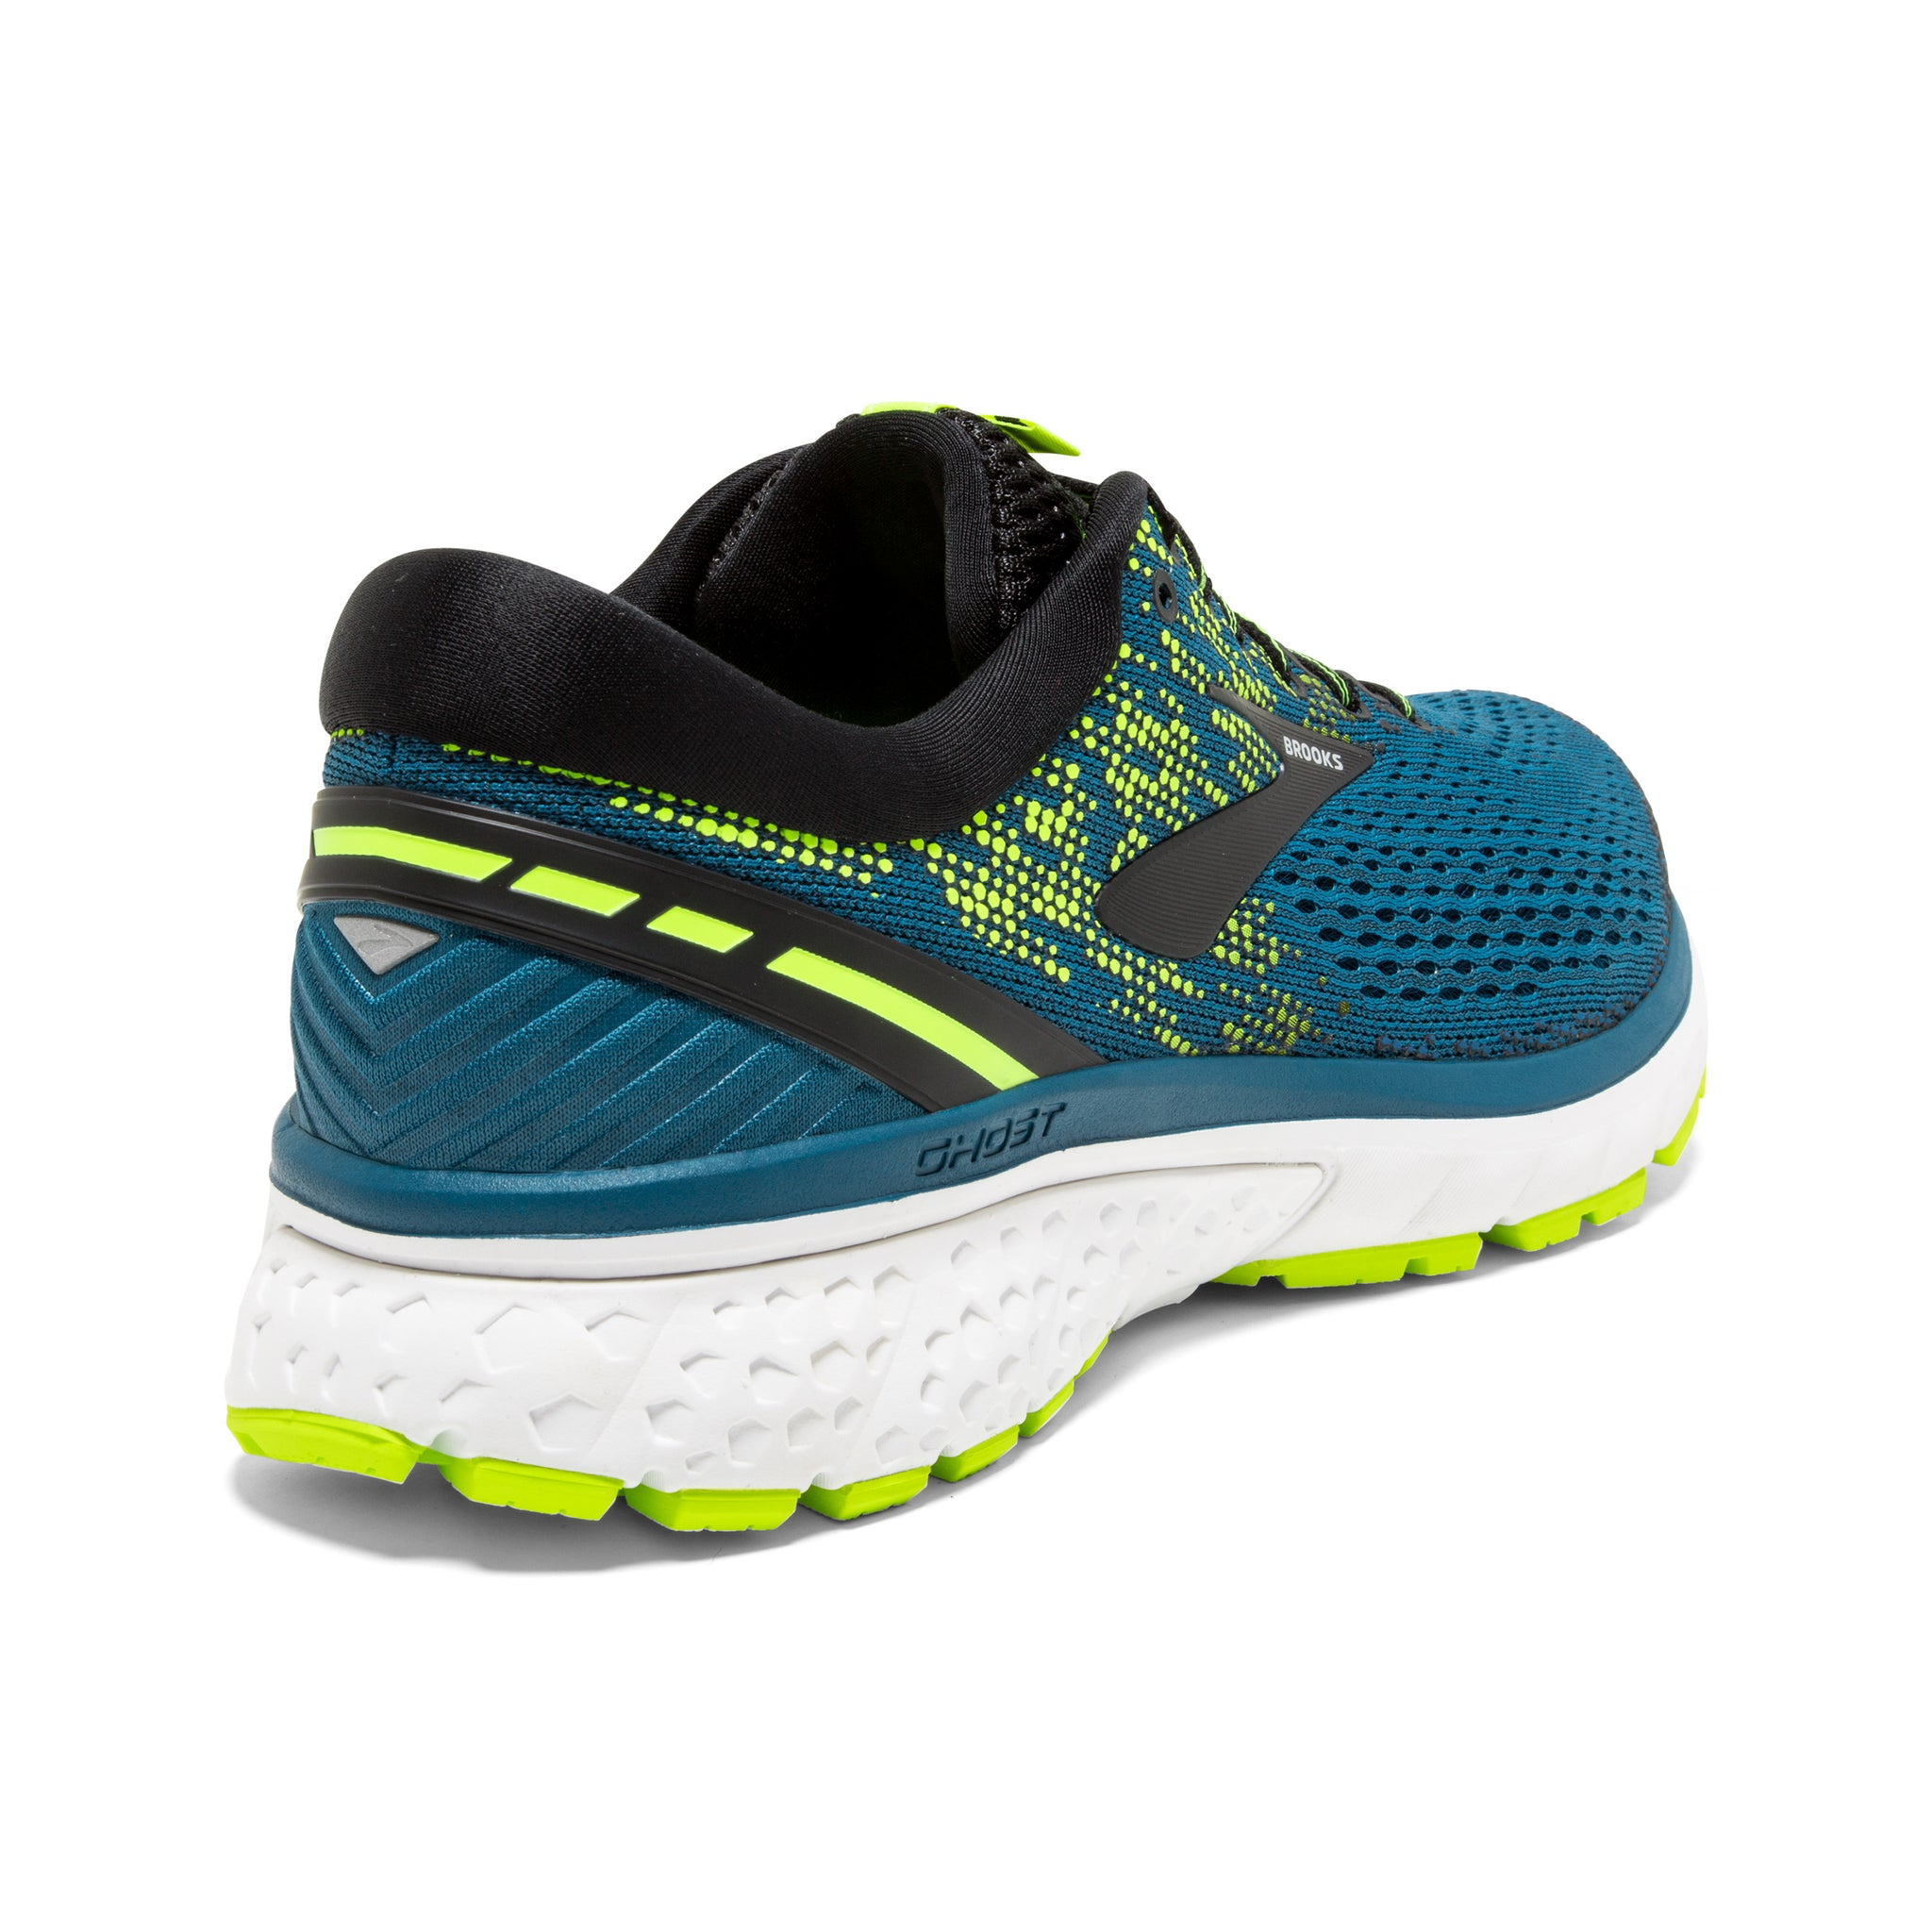 924d645fa0a Brooks Ghost 11 Mens Running Shoes With Latest DNA LOFT Softness